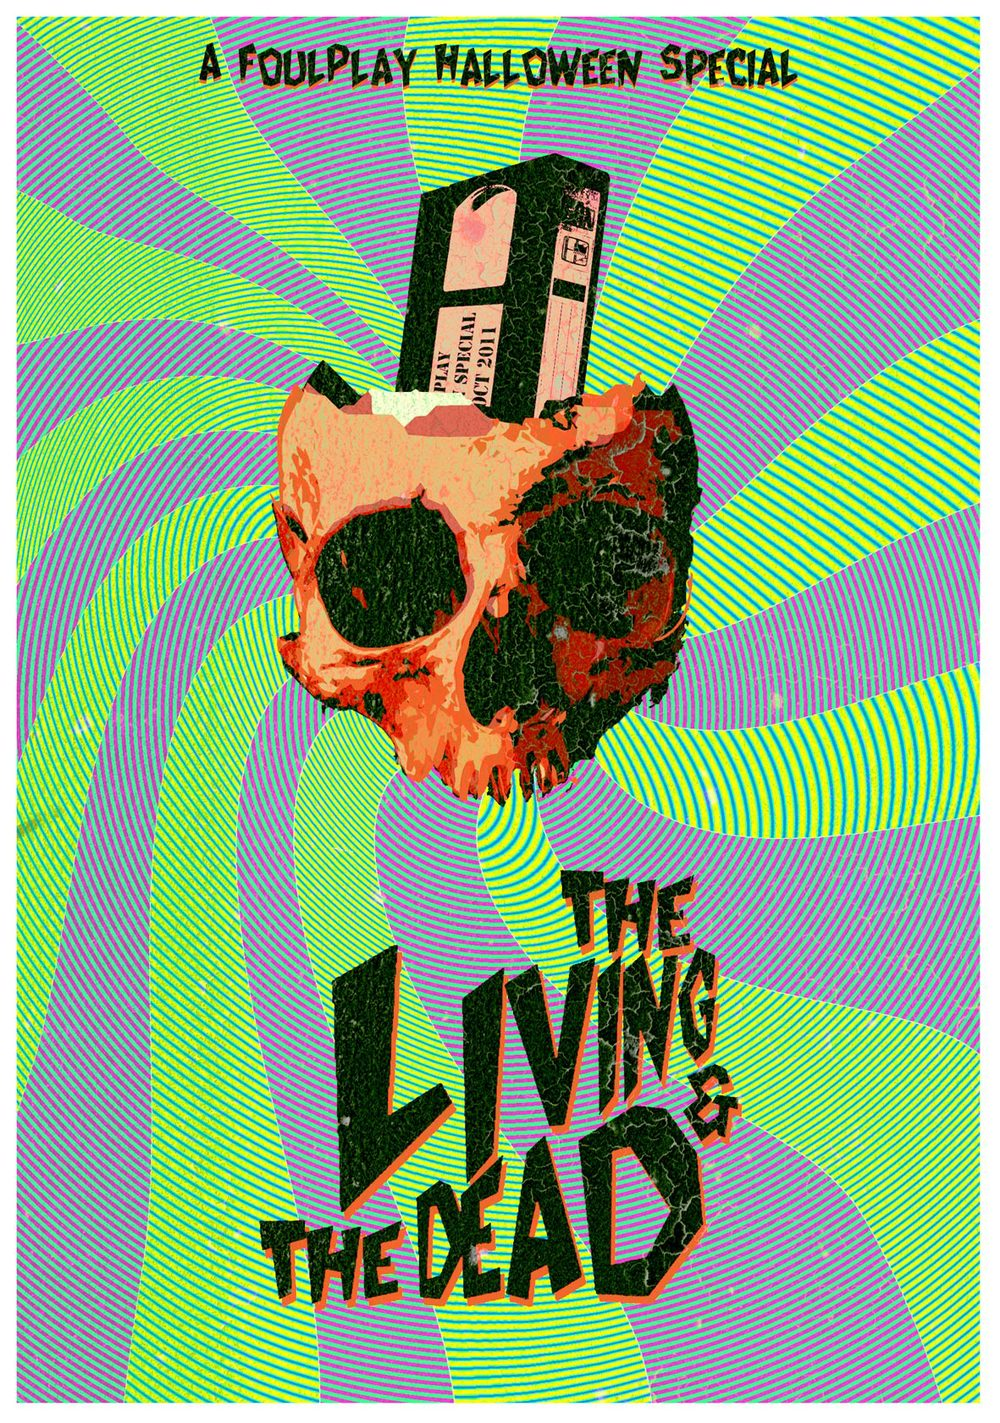 Flyer / Poster for FoulPlay halloween special 'The Living and the Dead'. Design by Ulysses Black